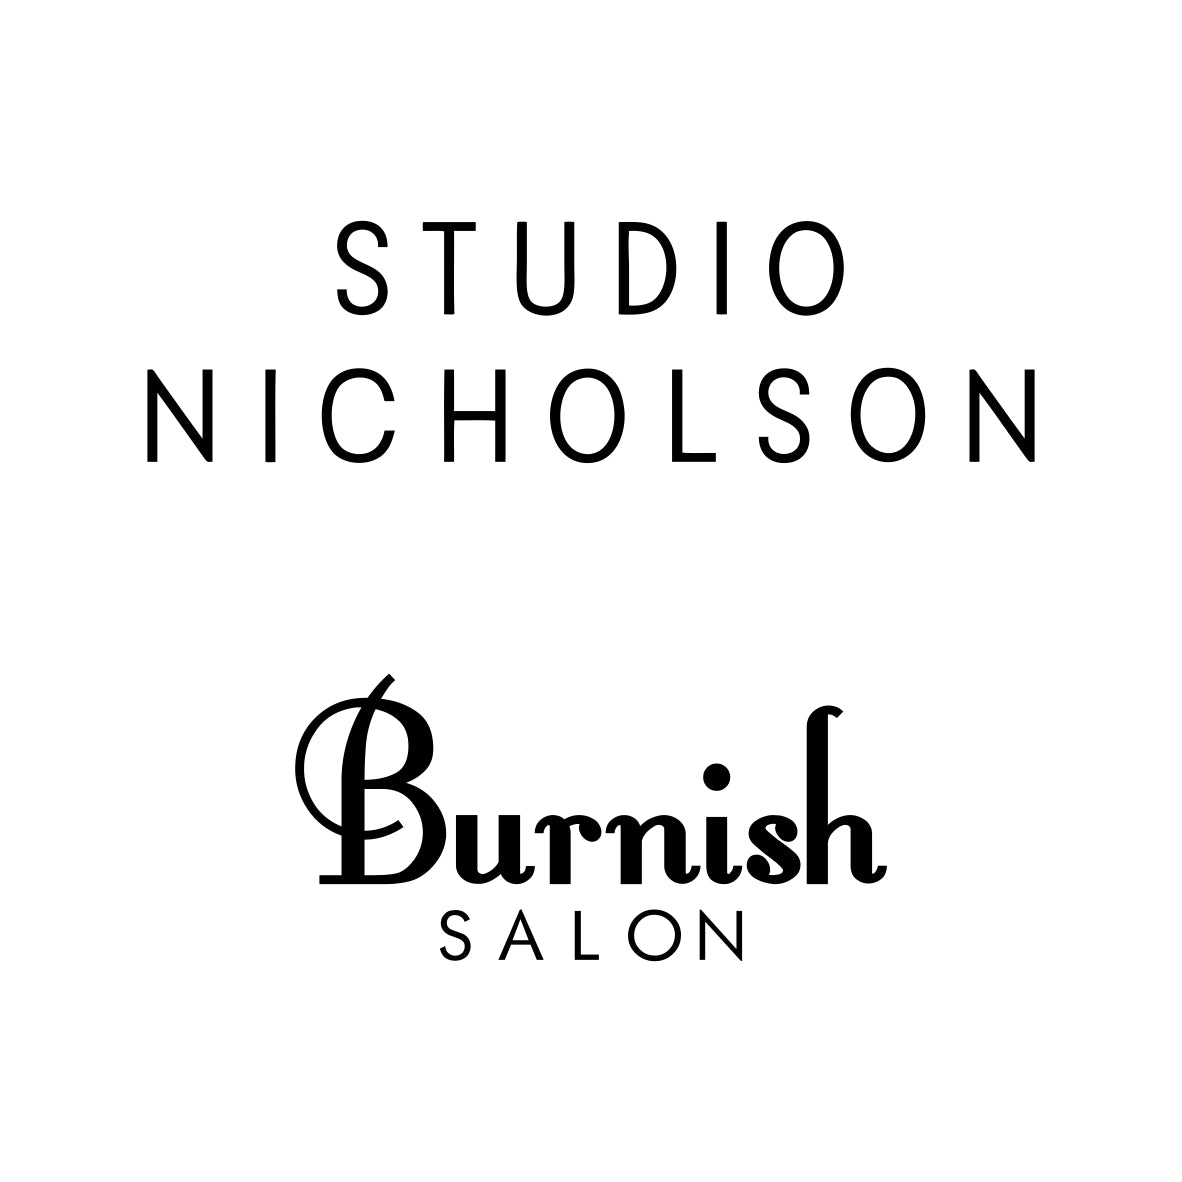 STUDIO NICHOLSON @Burnish SALON